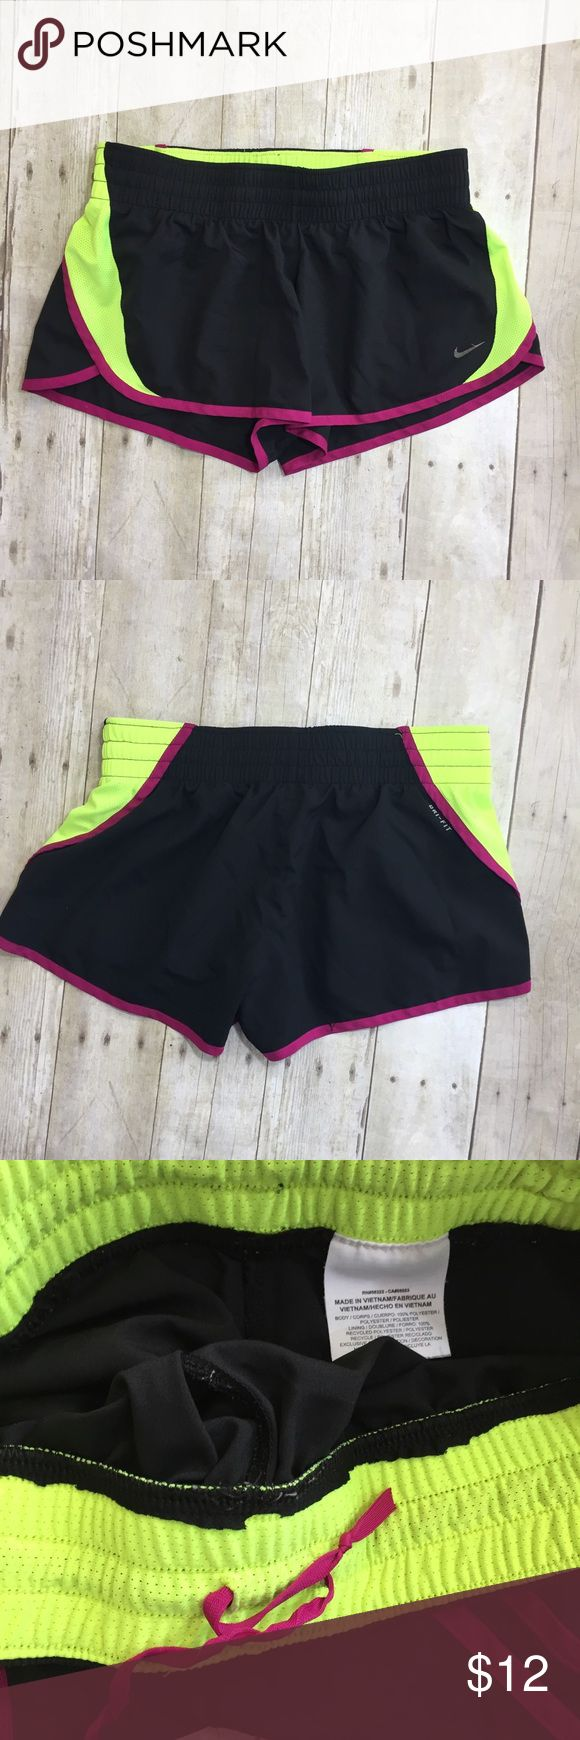 Woman's NIKE Dri-Fit Running Shorts Jogging S READ Woman's NIKE Dri-Fit Green/Pink/Black Running Shorts Jogging S READ. Unsure of size but runs a small. In good used condition. Nike logo is peeling a tad bit Nike Shorts